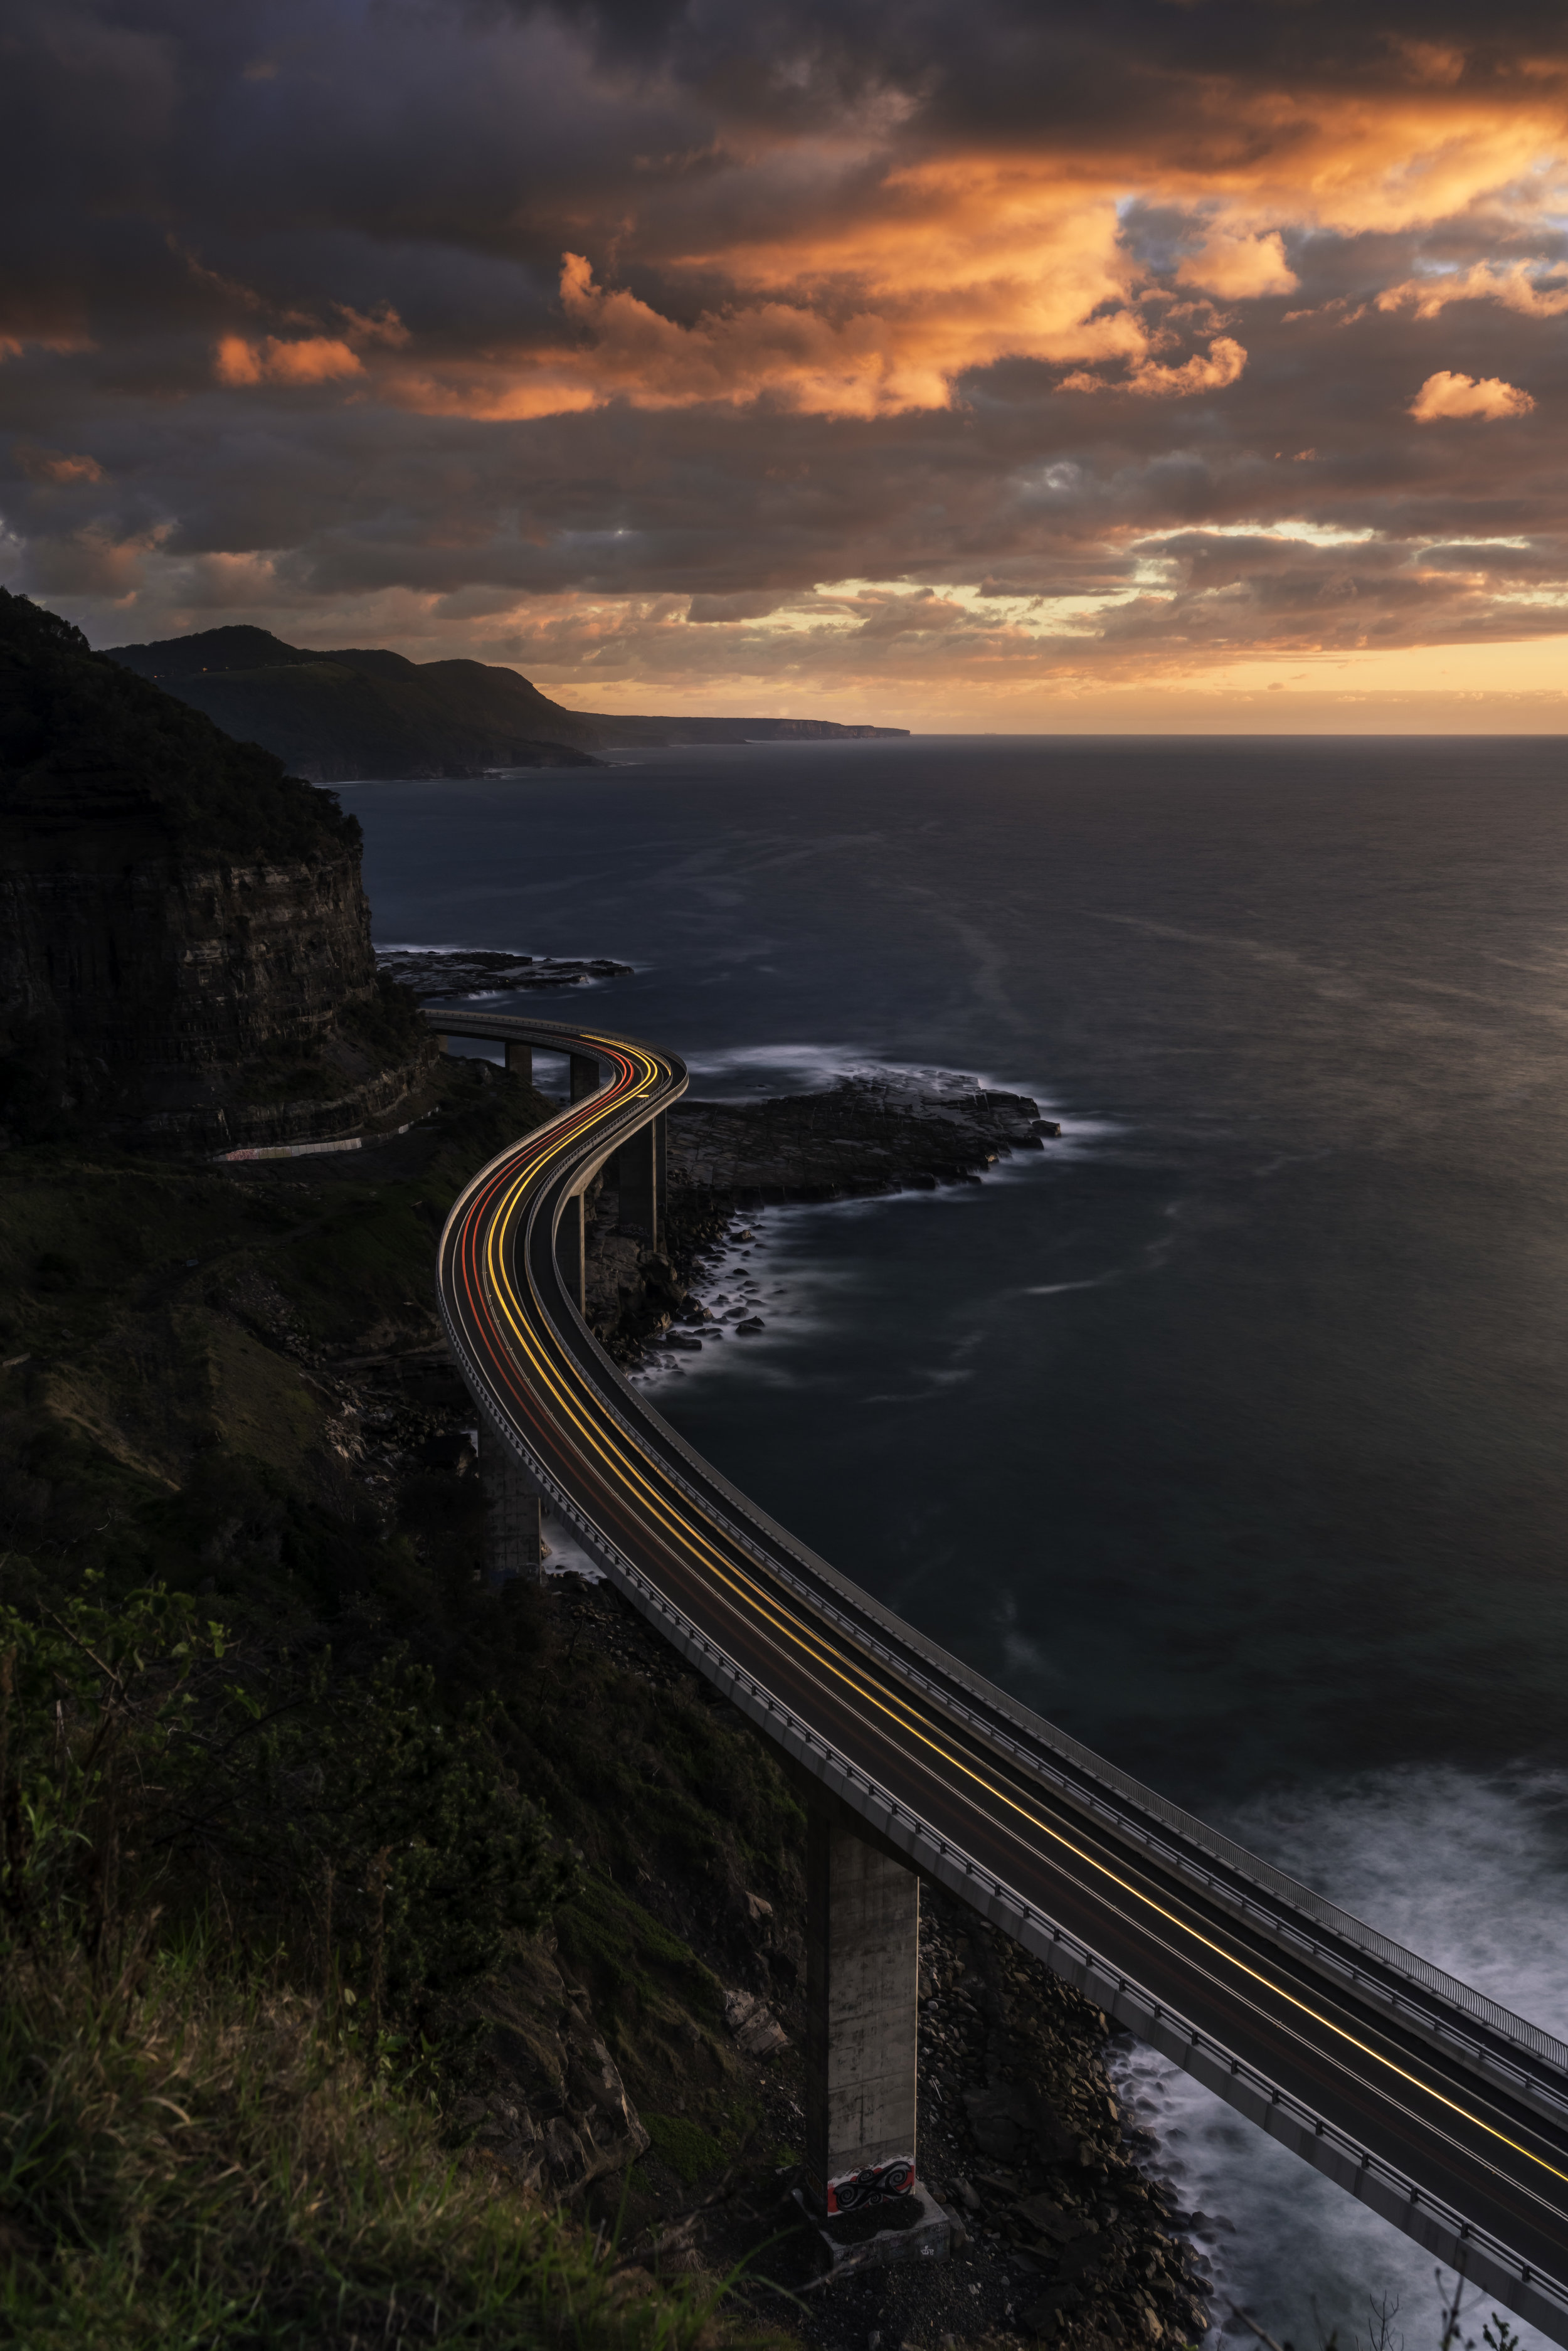 Sea Cliff Bridge is a shot I've wanted for a while, but it's definitely not new. In fact, the only reason I knew about this shot was because of Instagram.